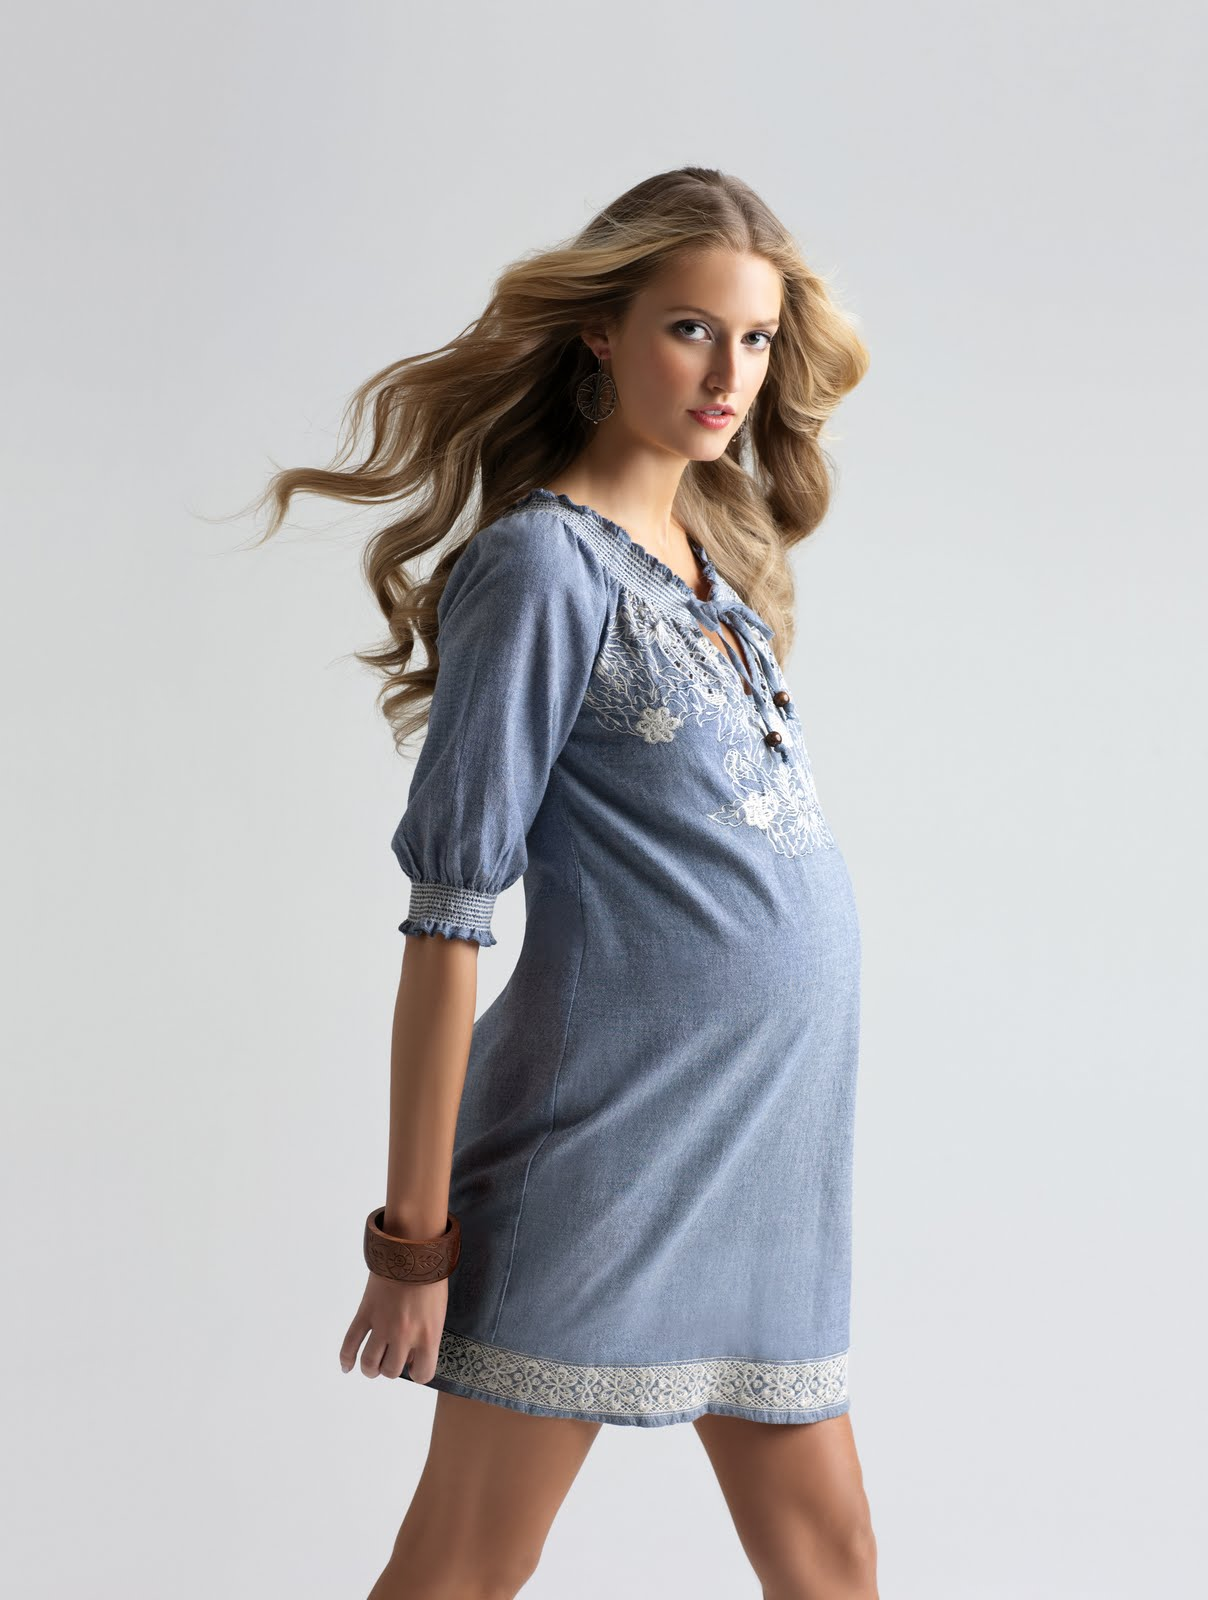 Fashionable maternity clothing